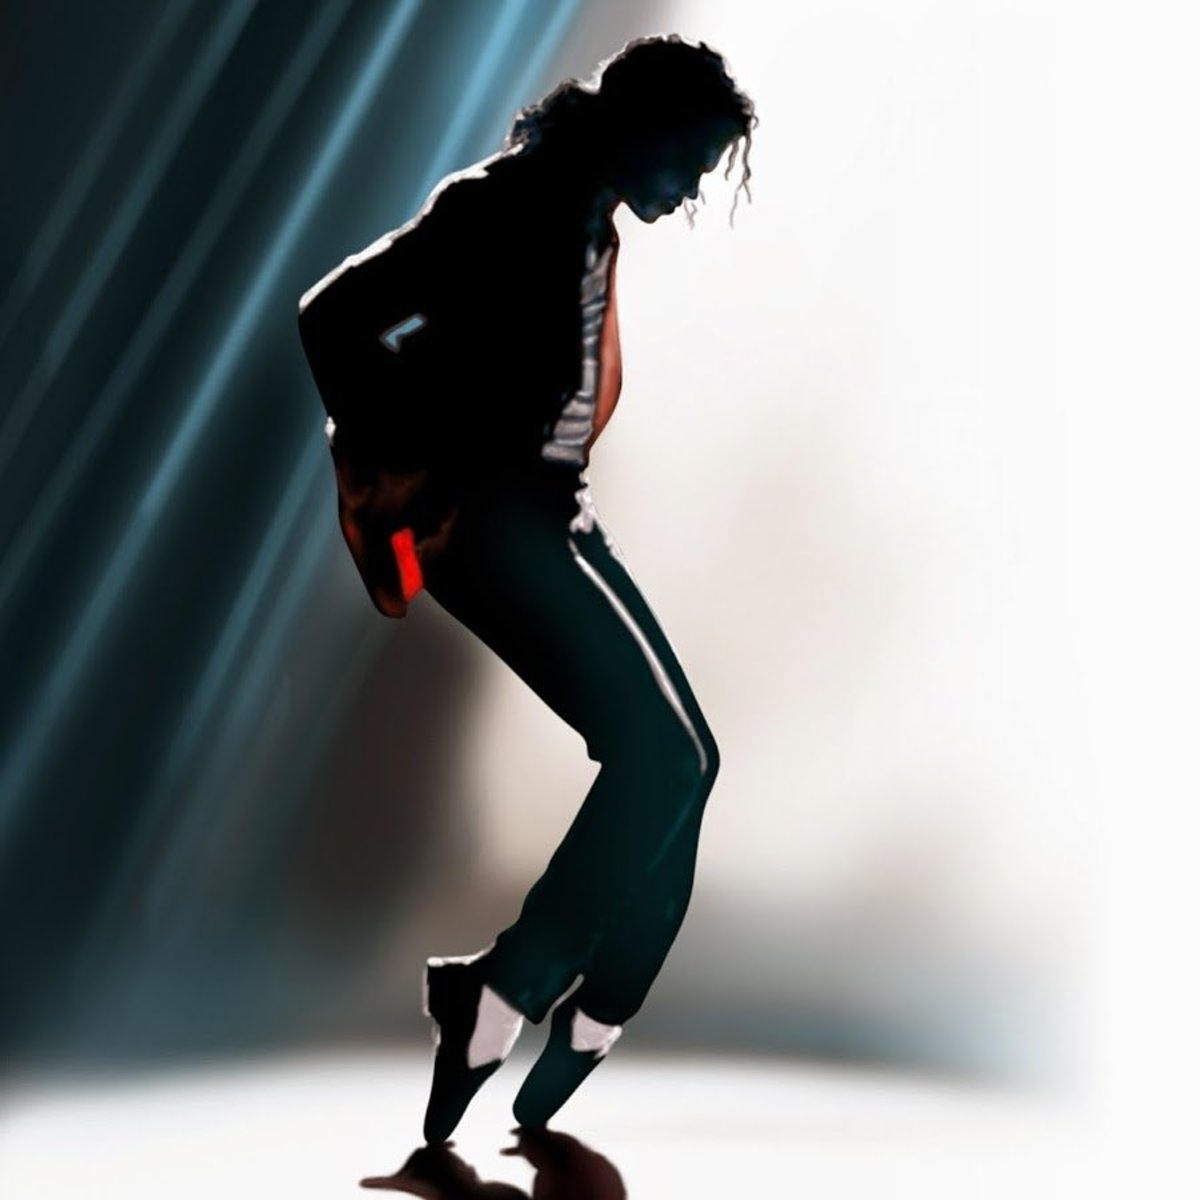 Michael Jackson: Alone in the Spotlight